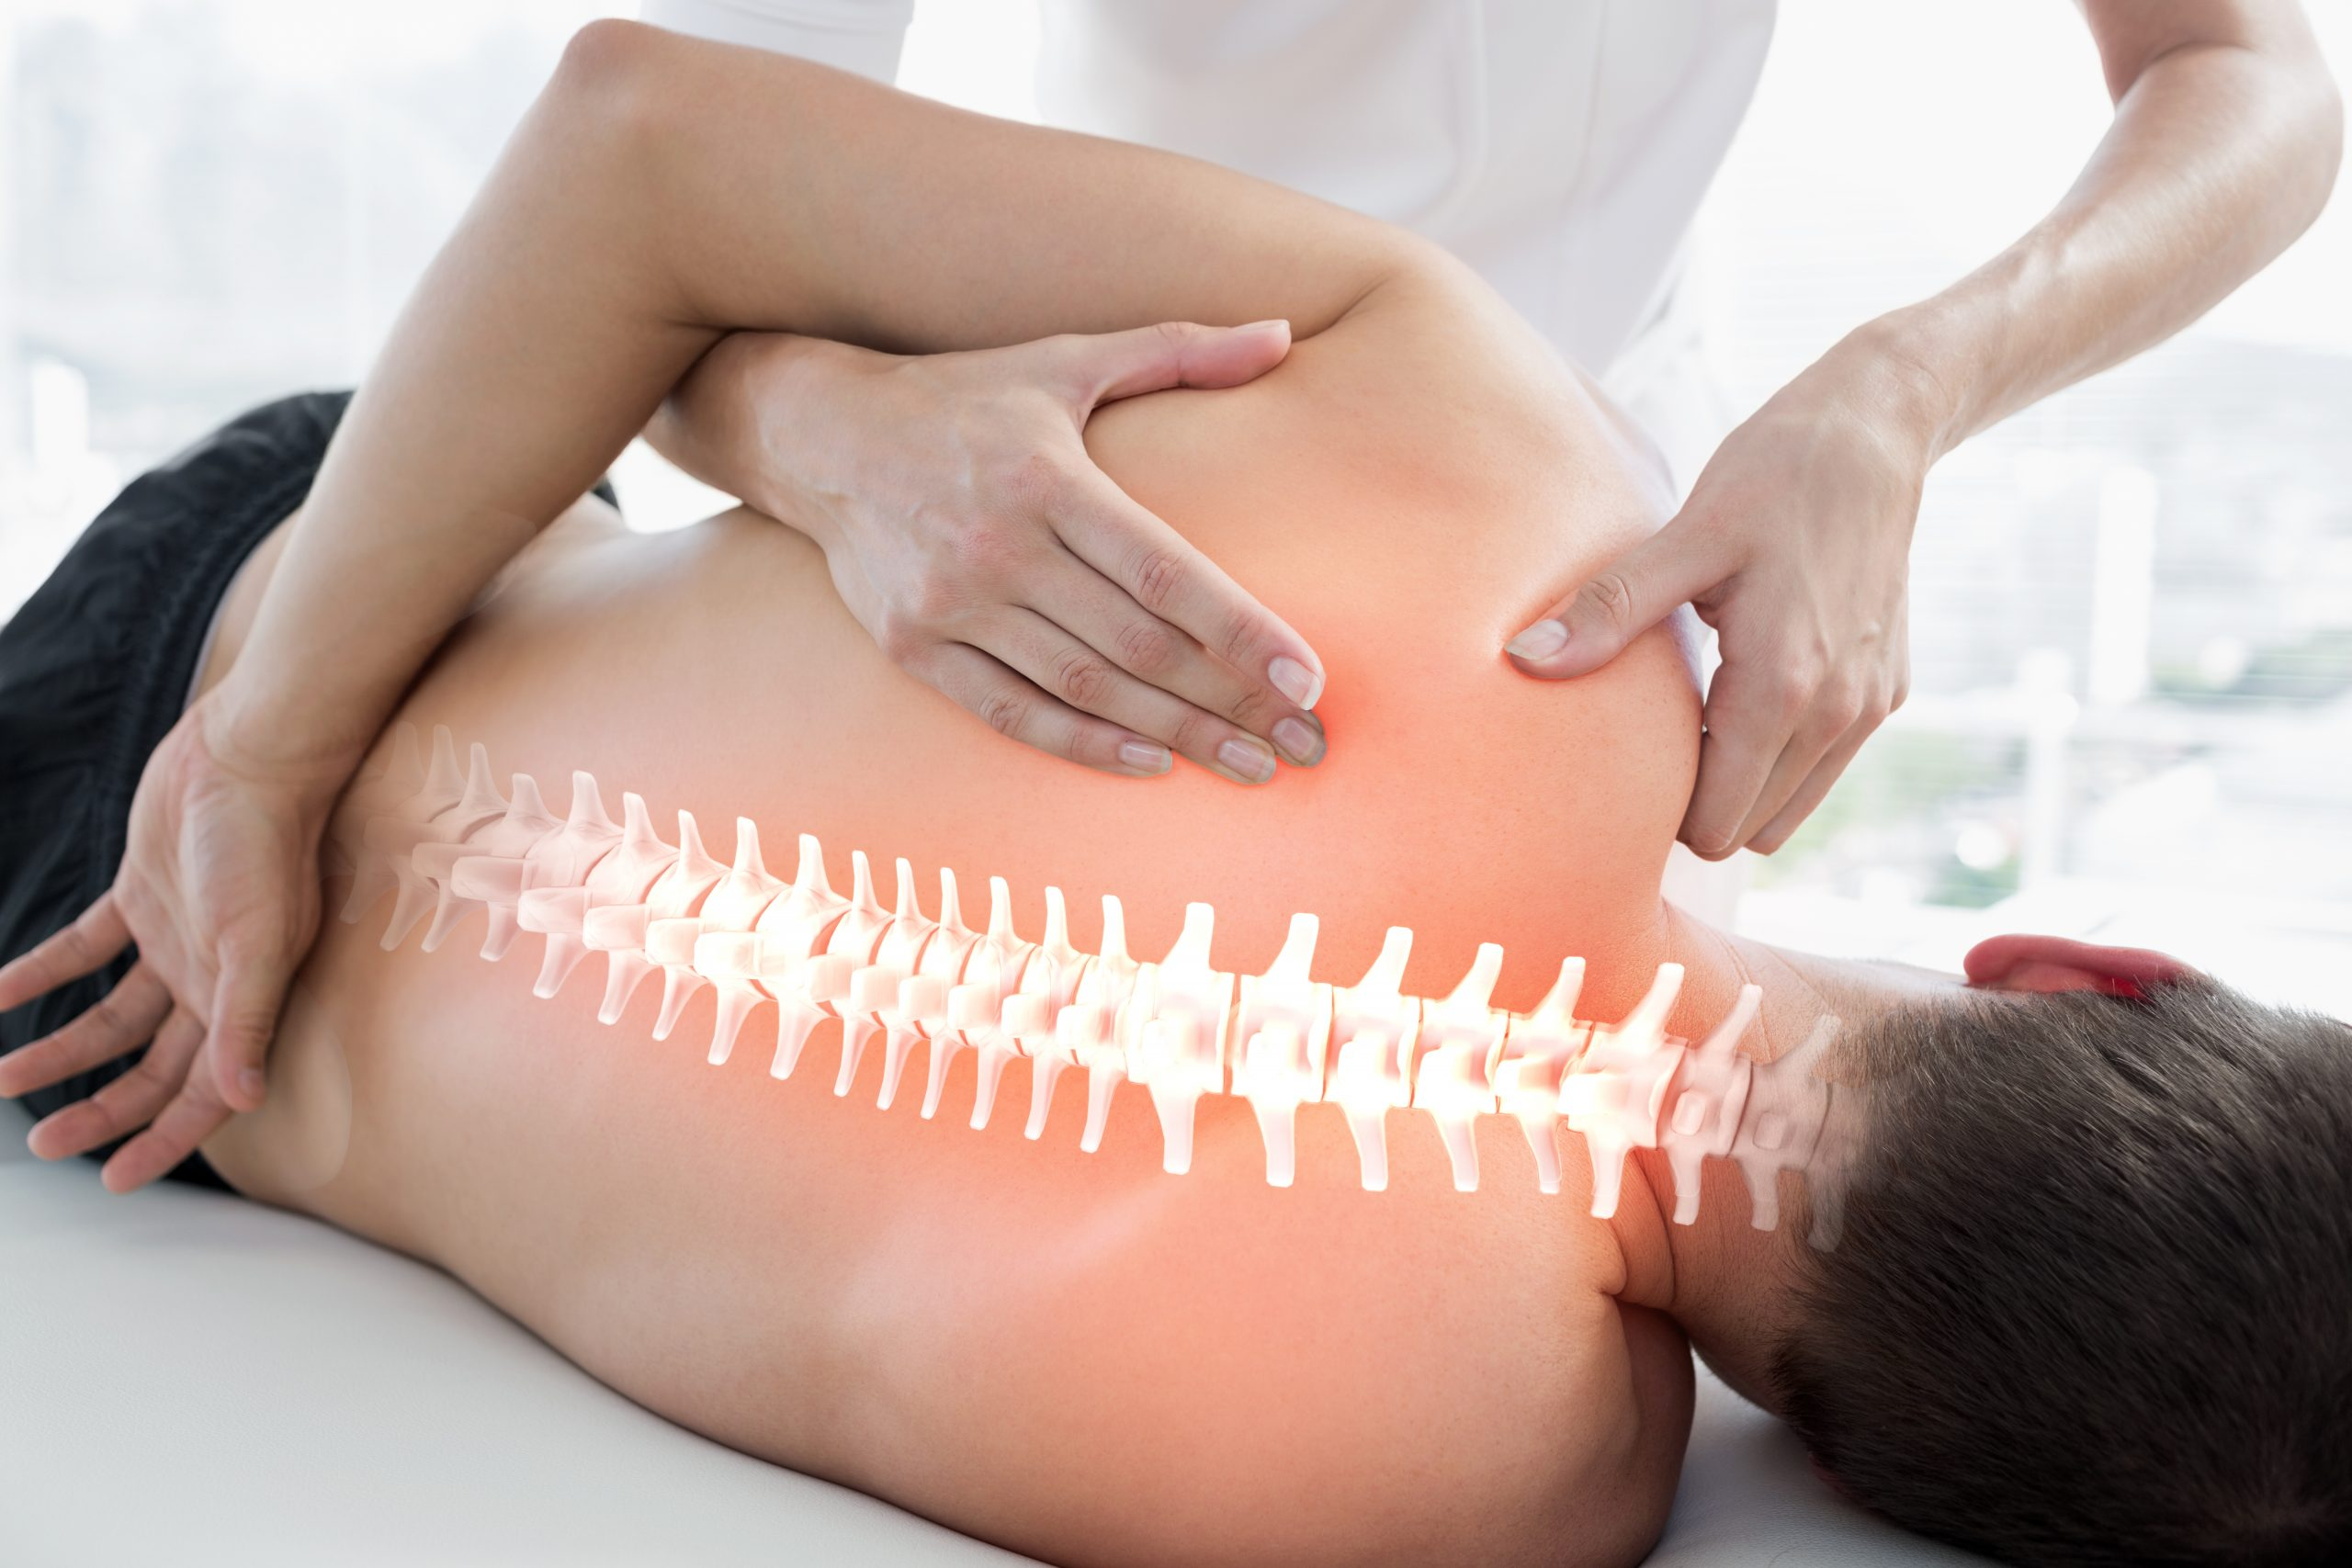 101 Physio and Podiatry is a Spinal And Sports Medicine Clinic